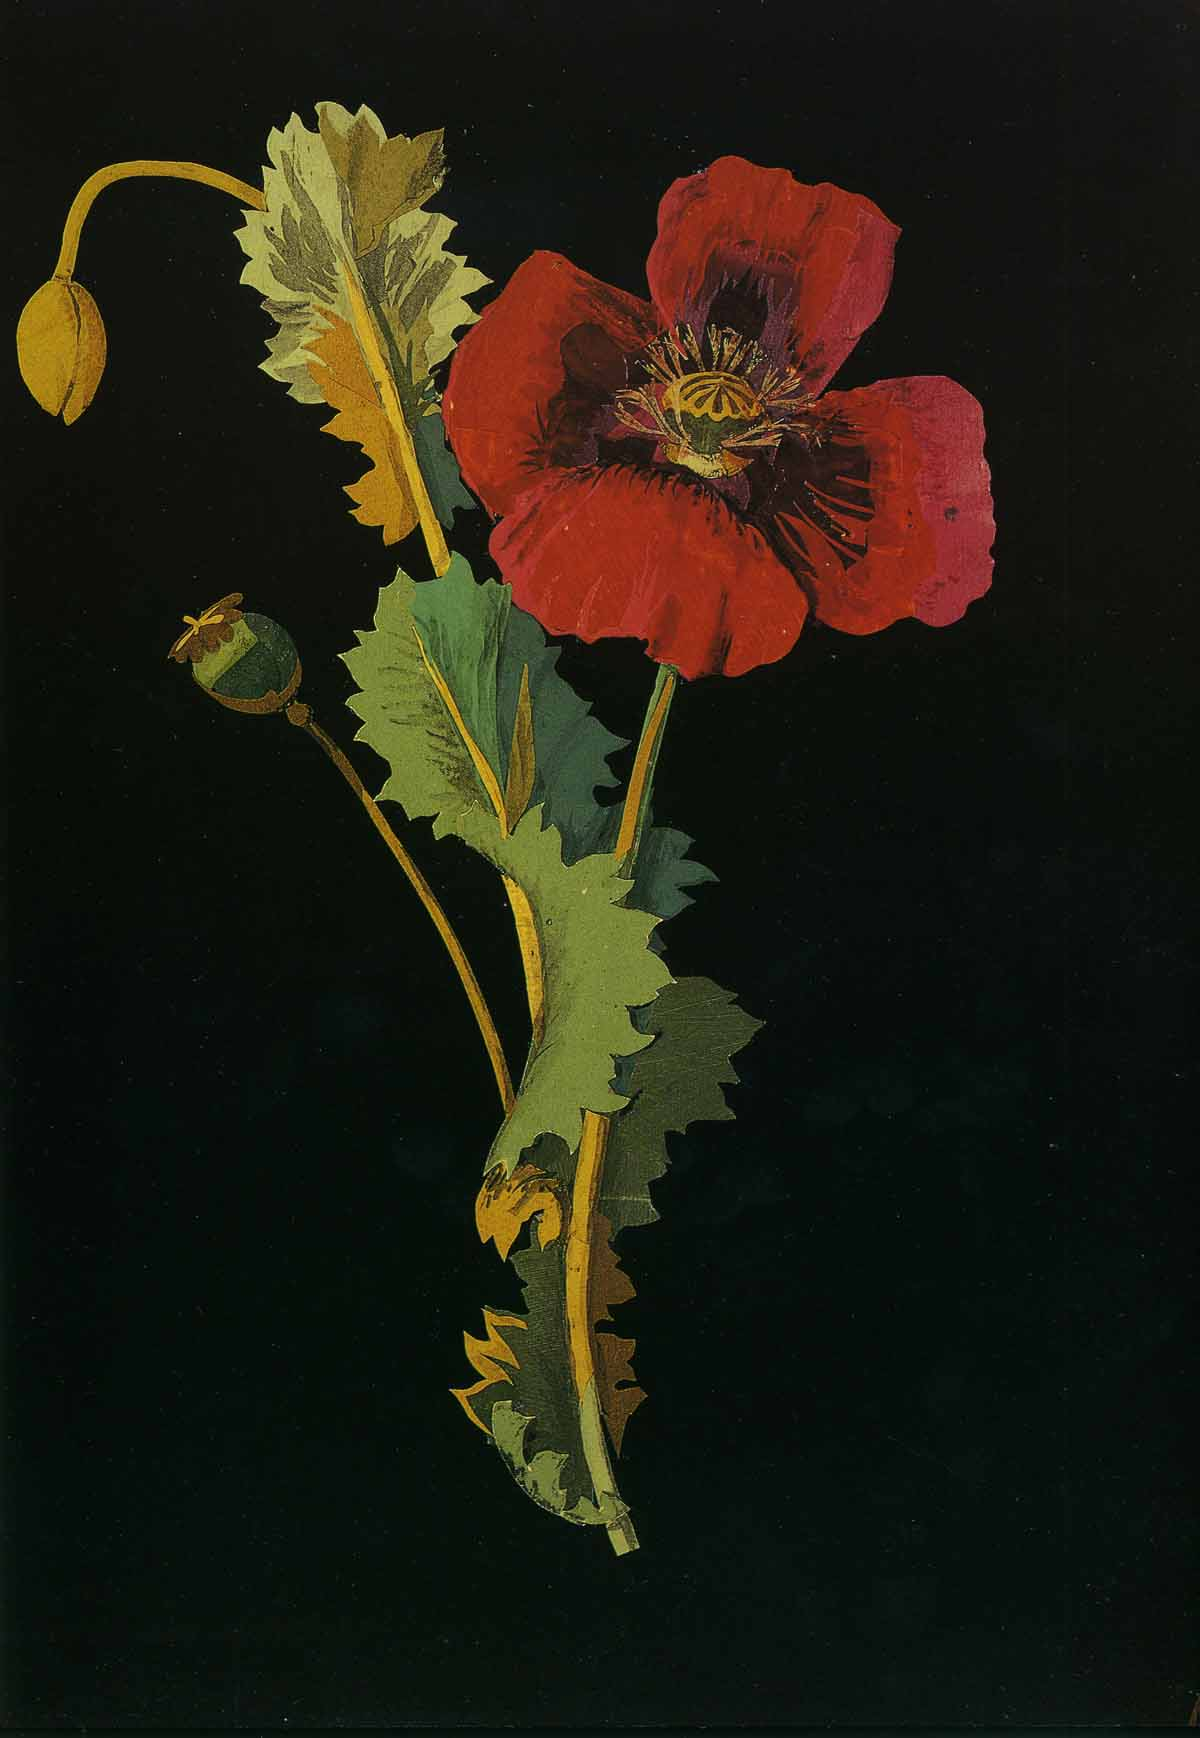 Papaver somniferum, the Opium Poppy, Bulstrode, October 18, 1776, by Mary Delany. Please note: All images are from The Paper Garden and provided courtesy of The British Museum.